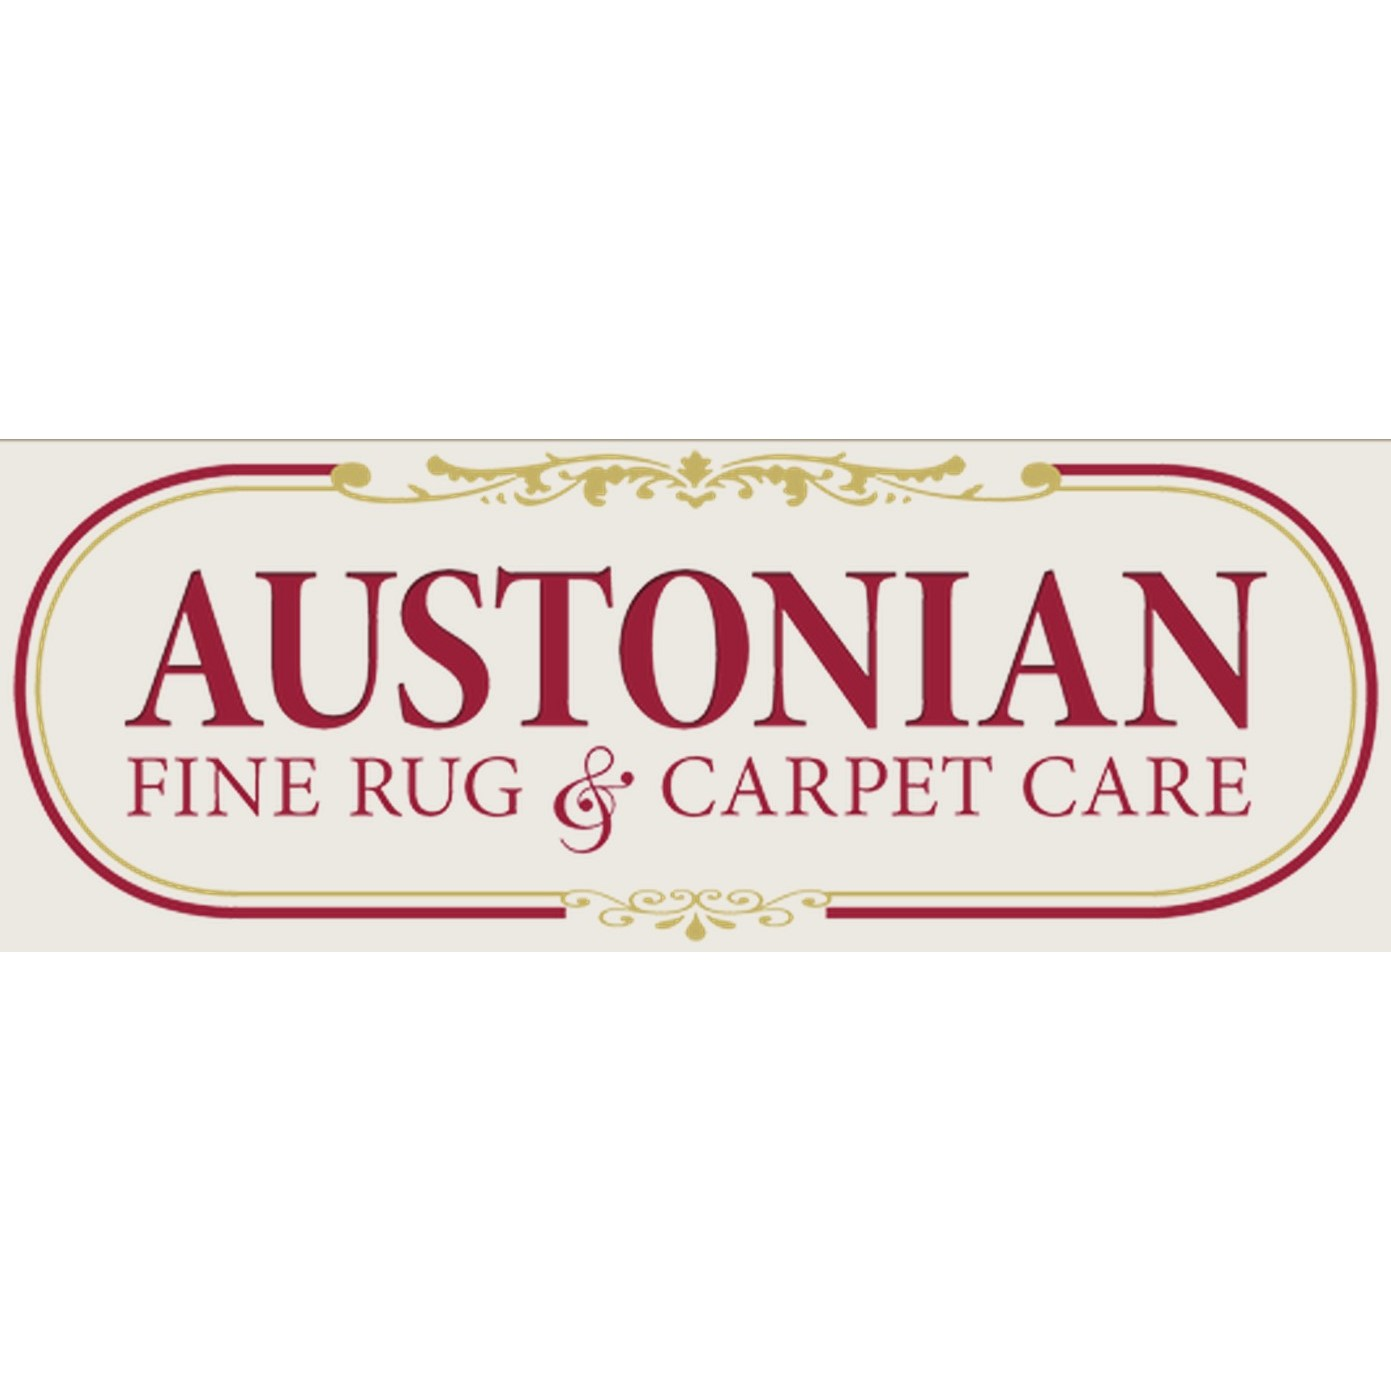 Austonian Rug Cleaning Co.